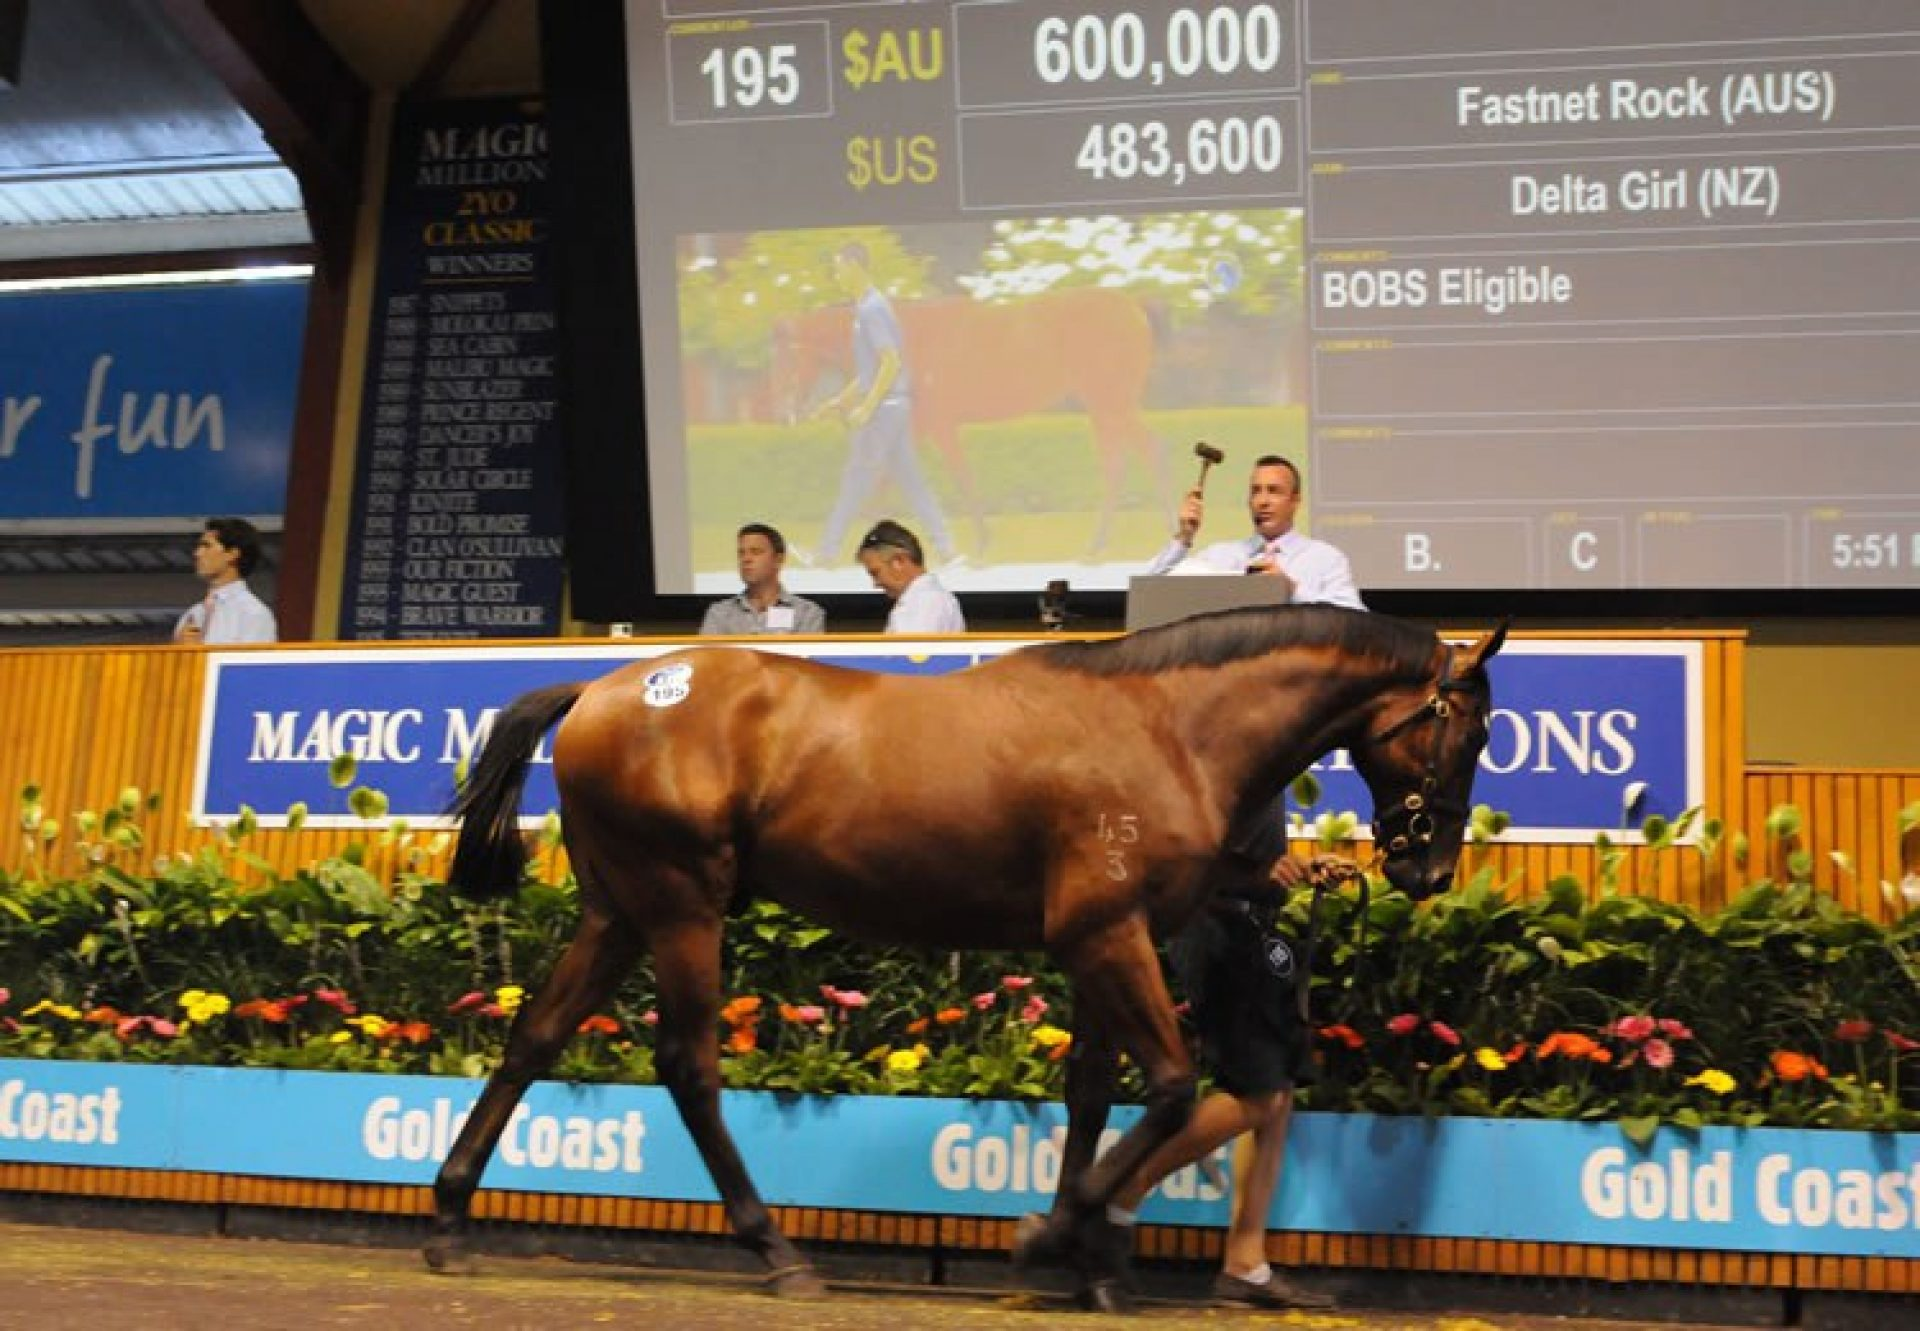 Fastnet Rock ex Delta Girl yearling colt selling for $600,000 at the 2015 Magic Millions Yearling Sale